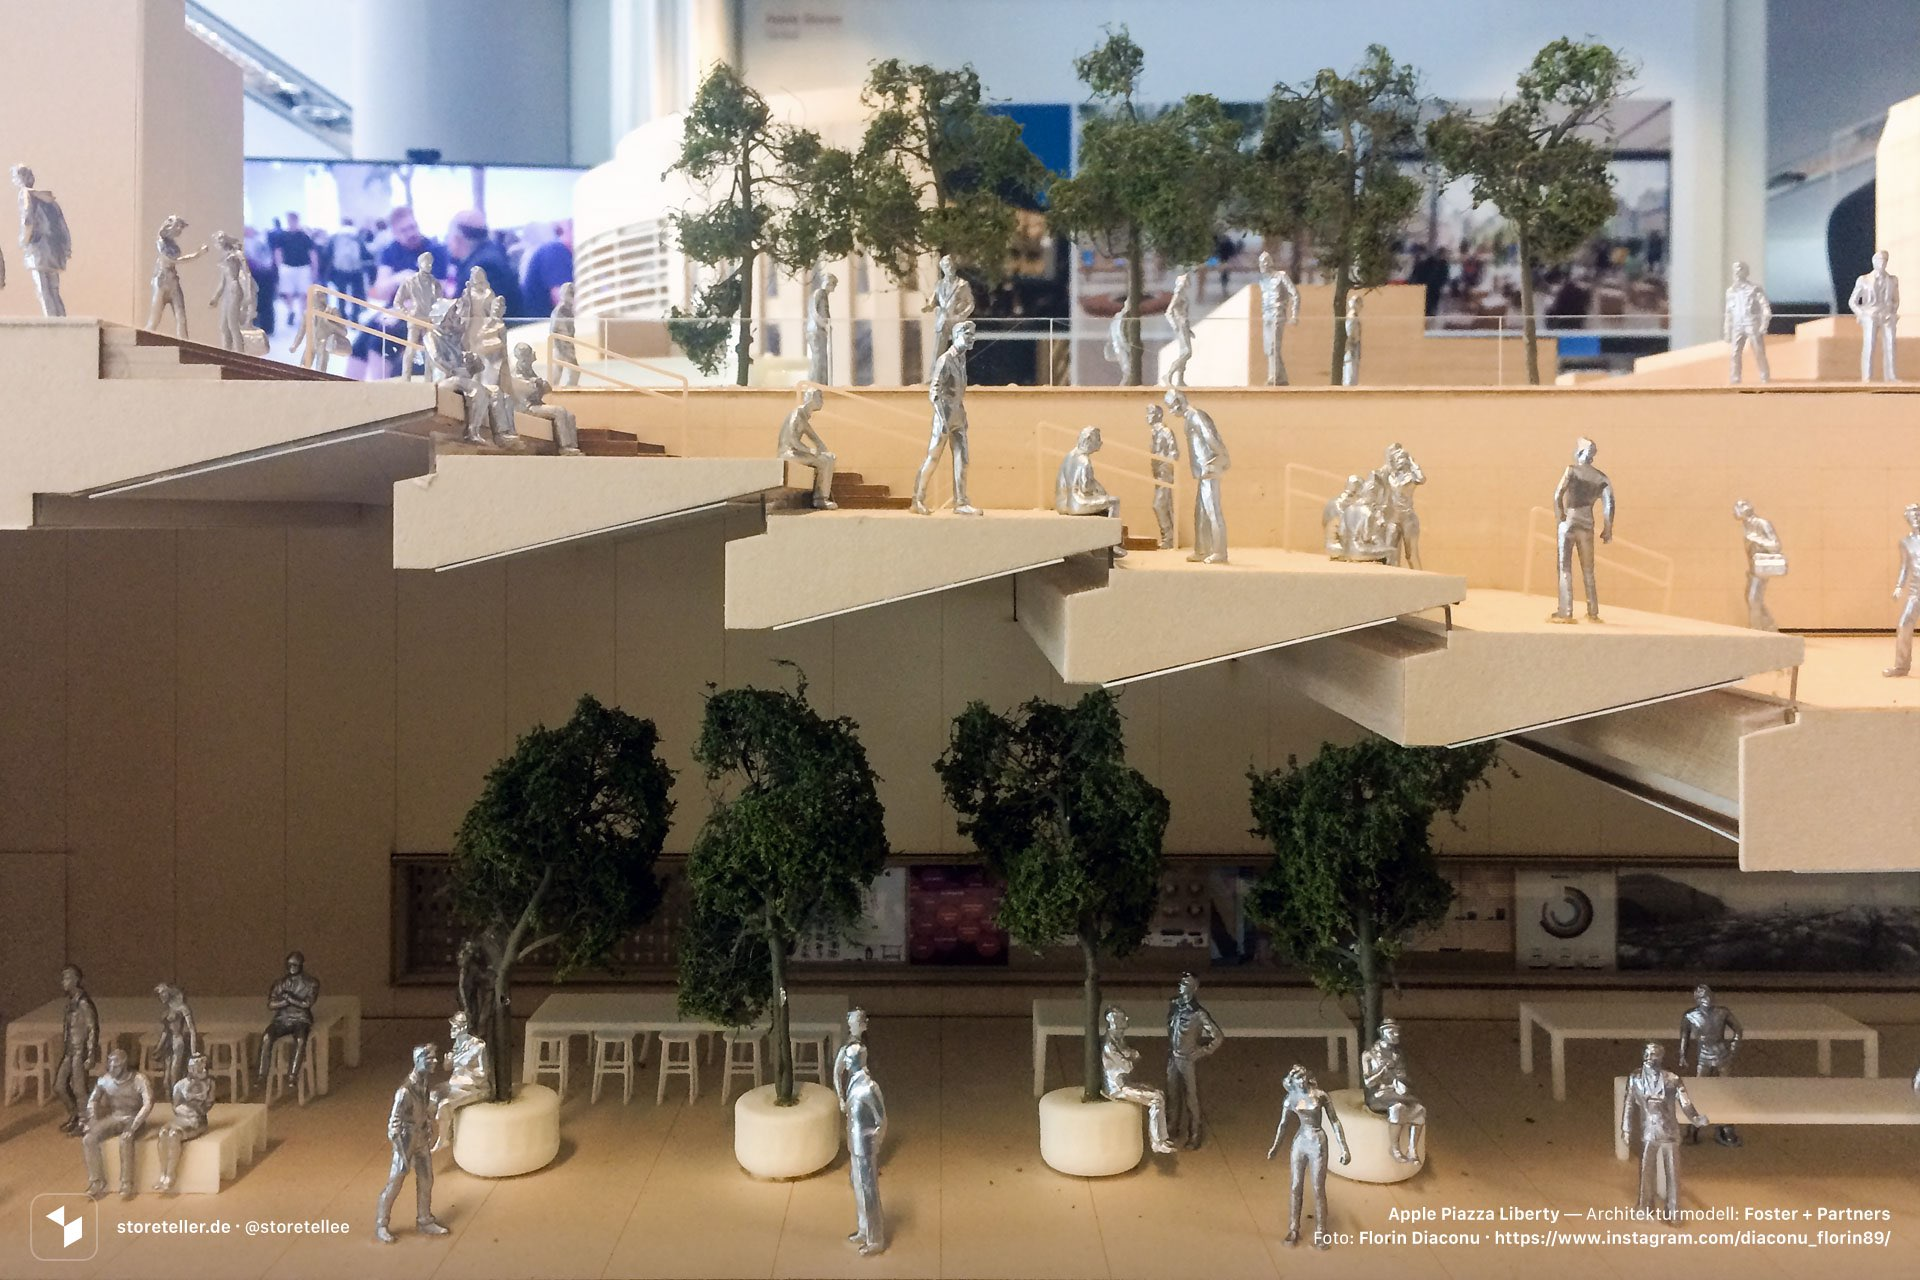 Check out the architectural model of Apples newlyopened